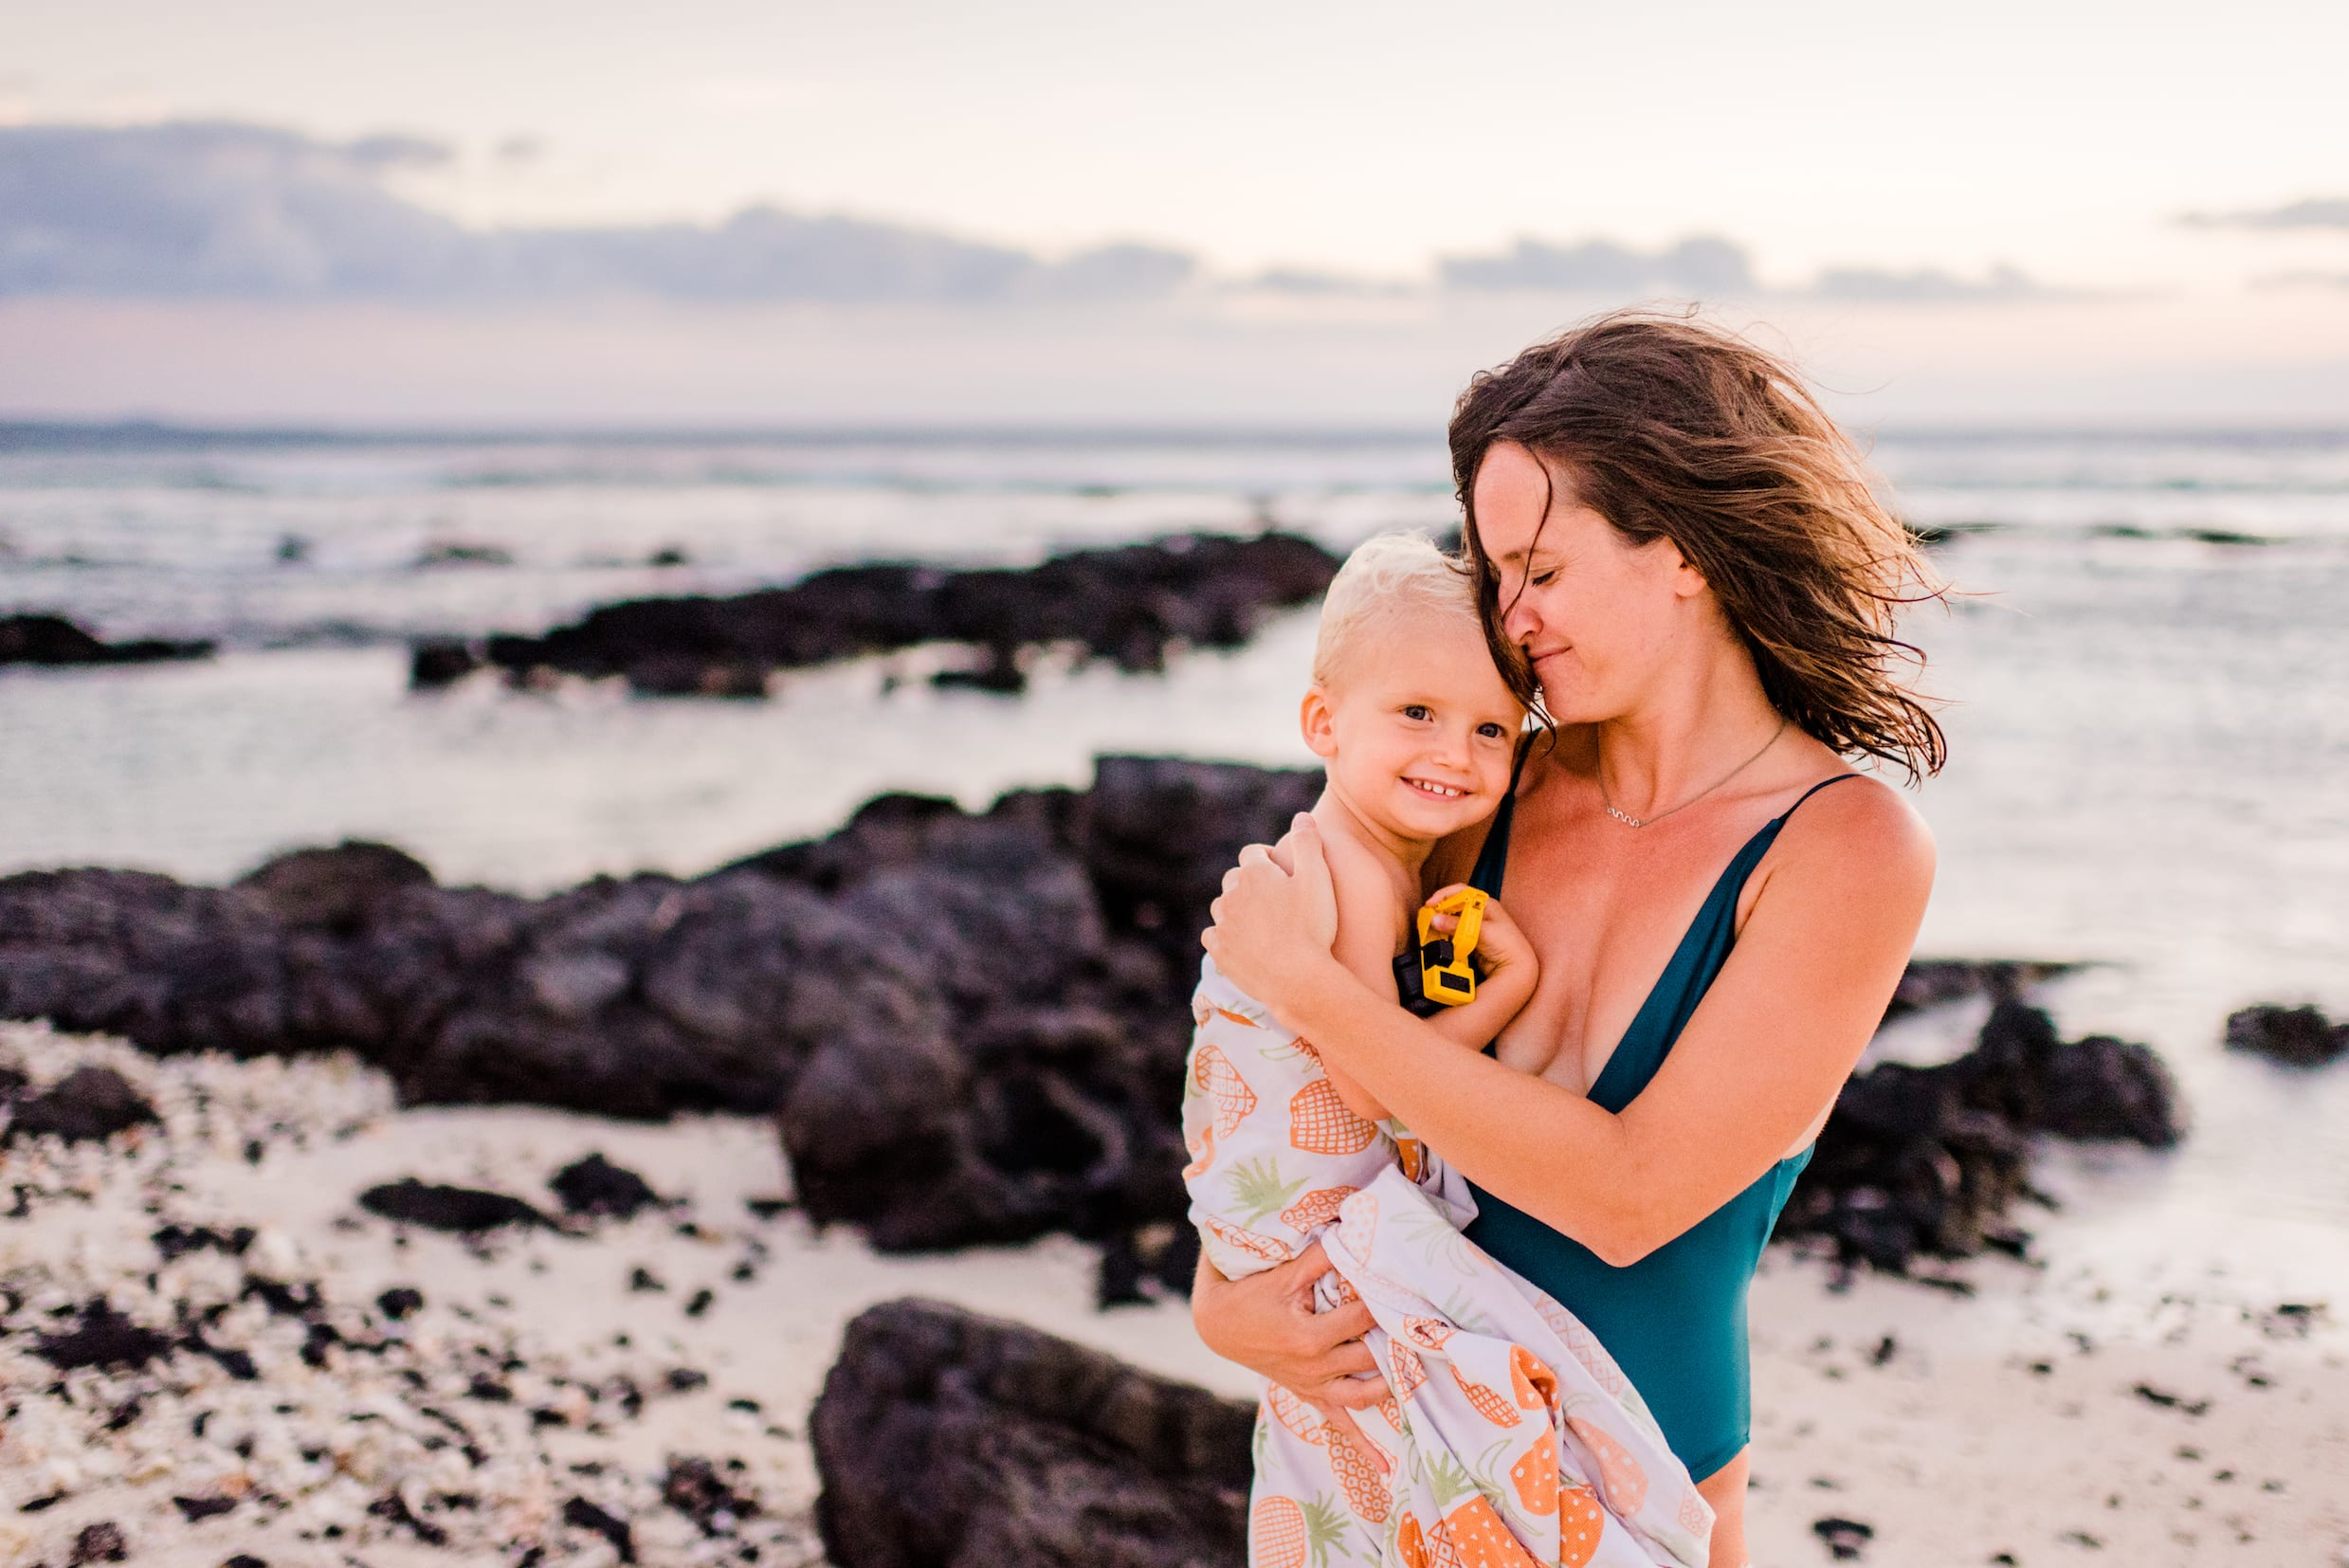 Hawaii-Vacation-Family-Photographer-Waikoloa-20.jpg